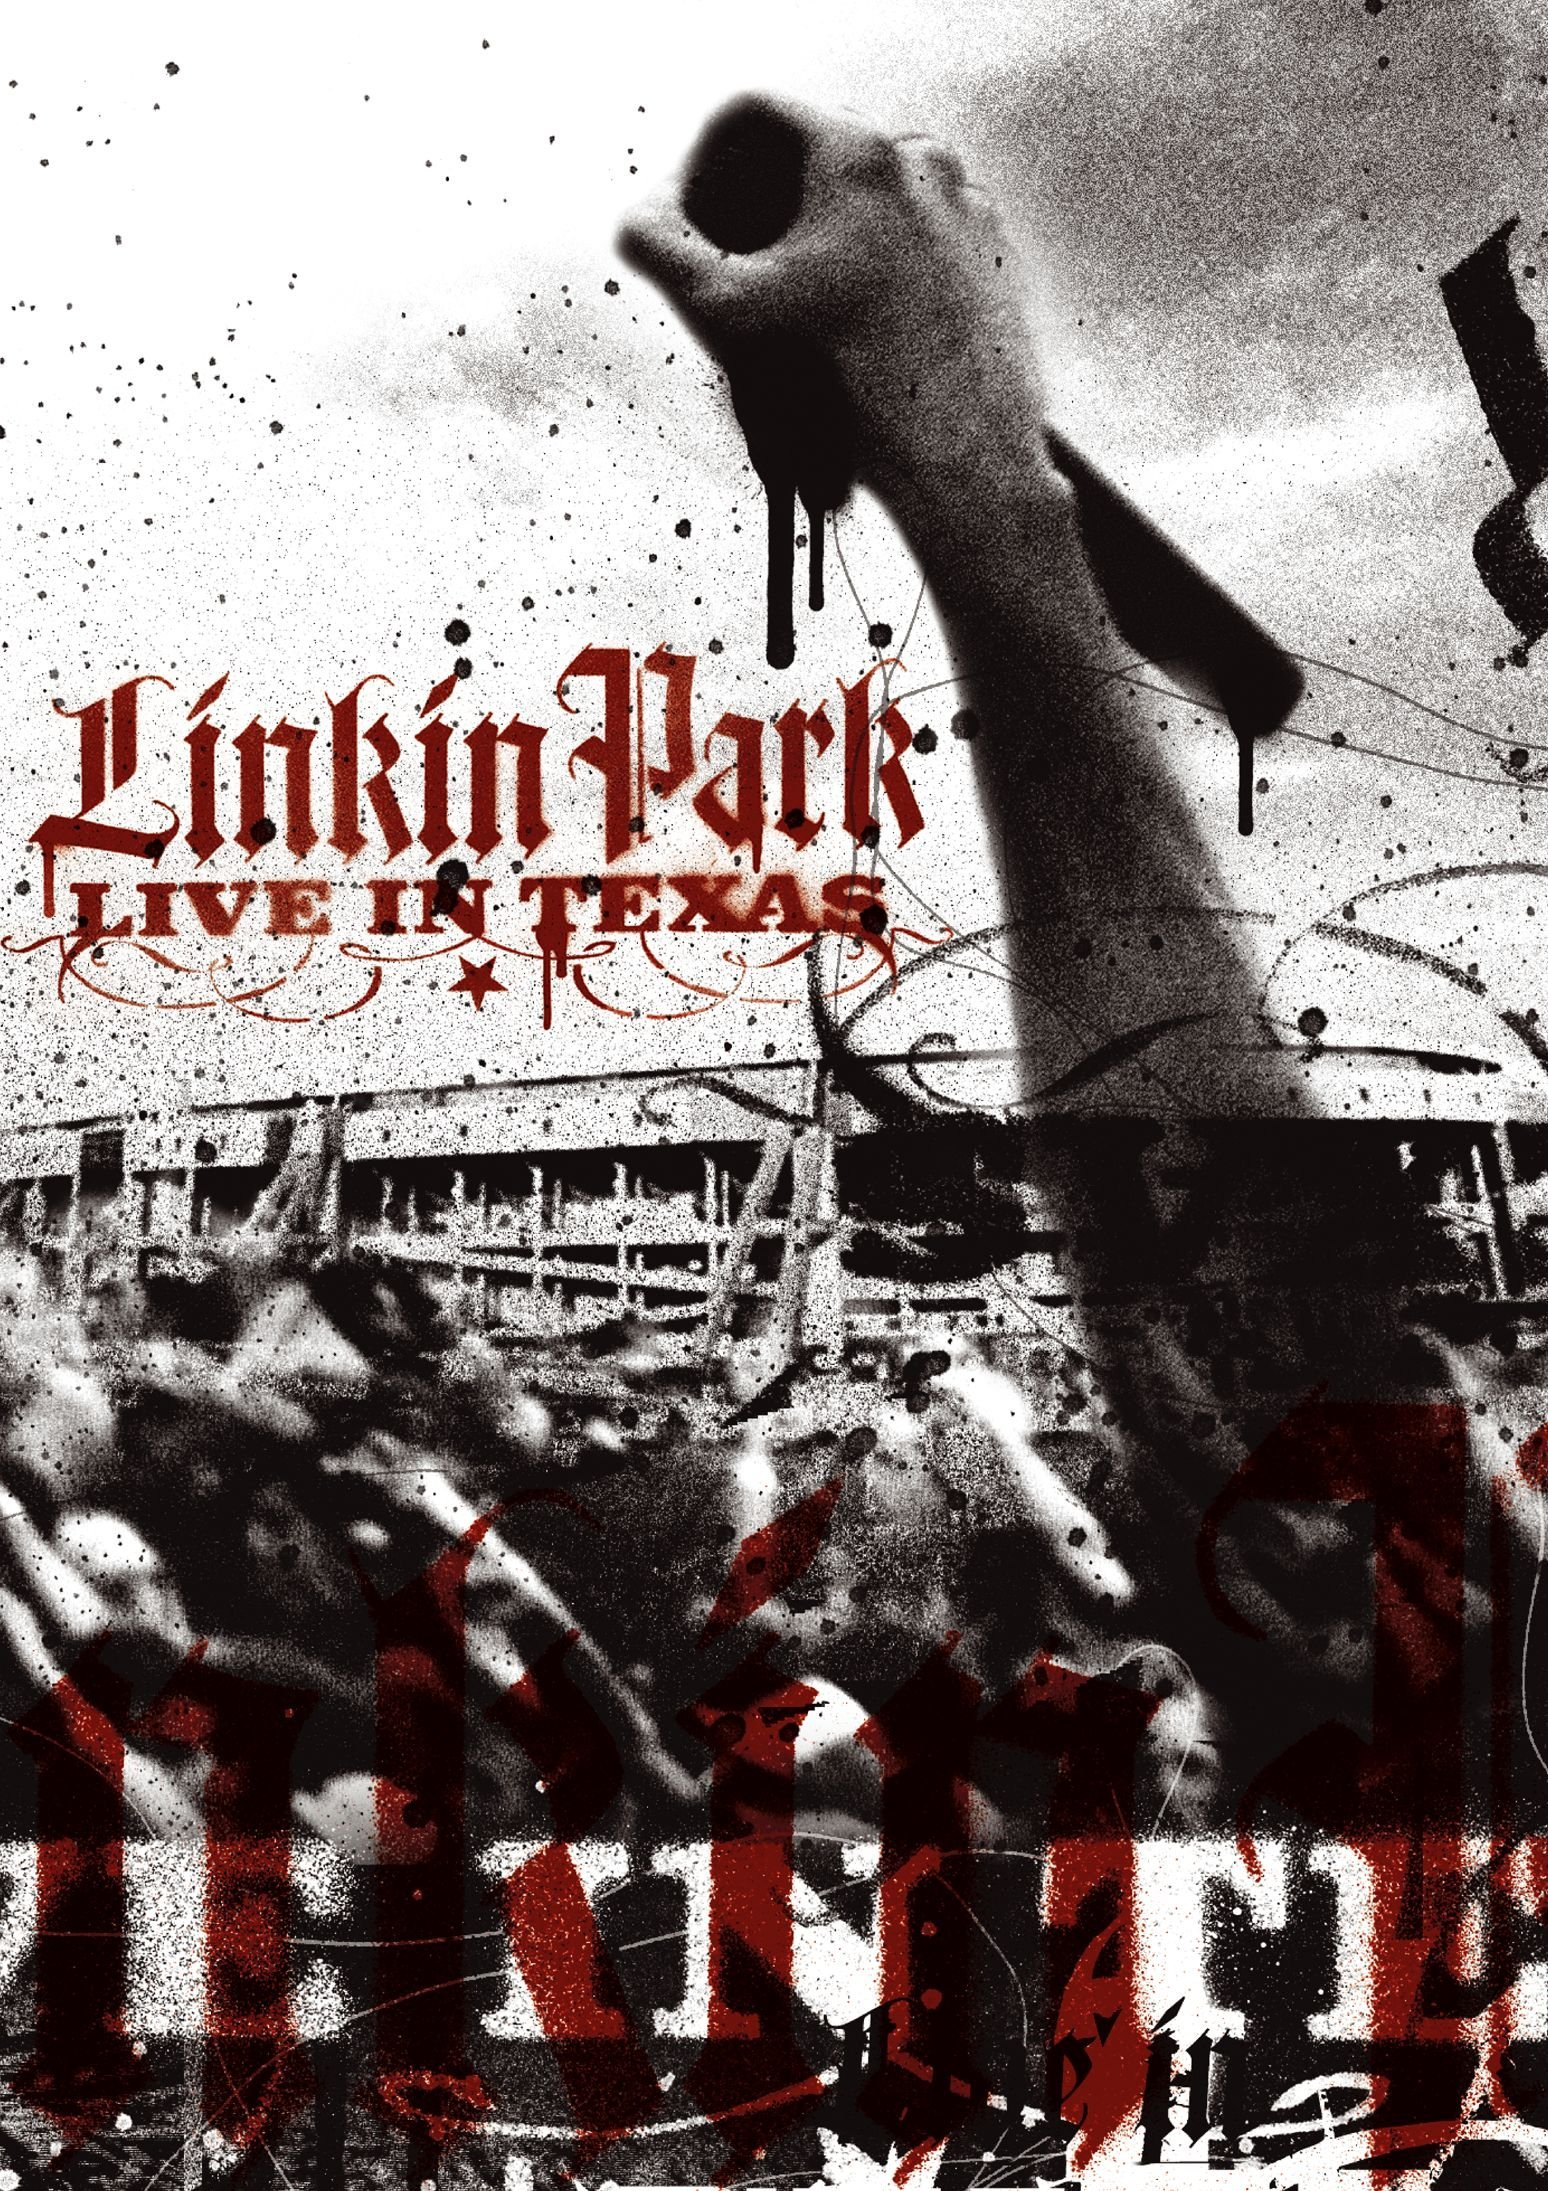 Linkin Park: Live in Texas by WEA DES Moines Video